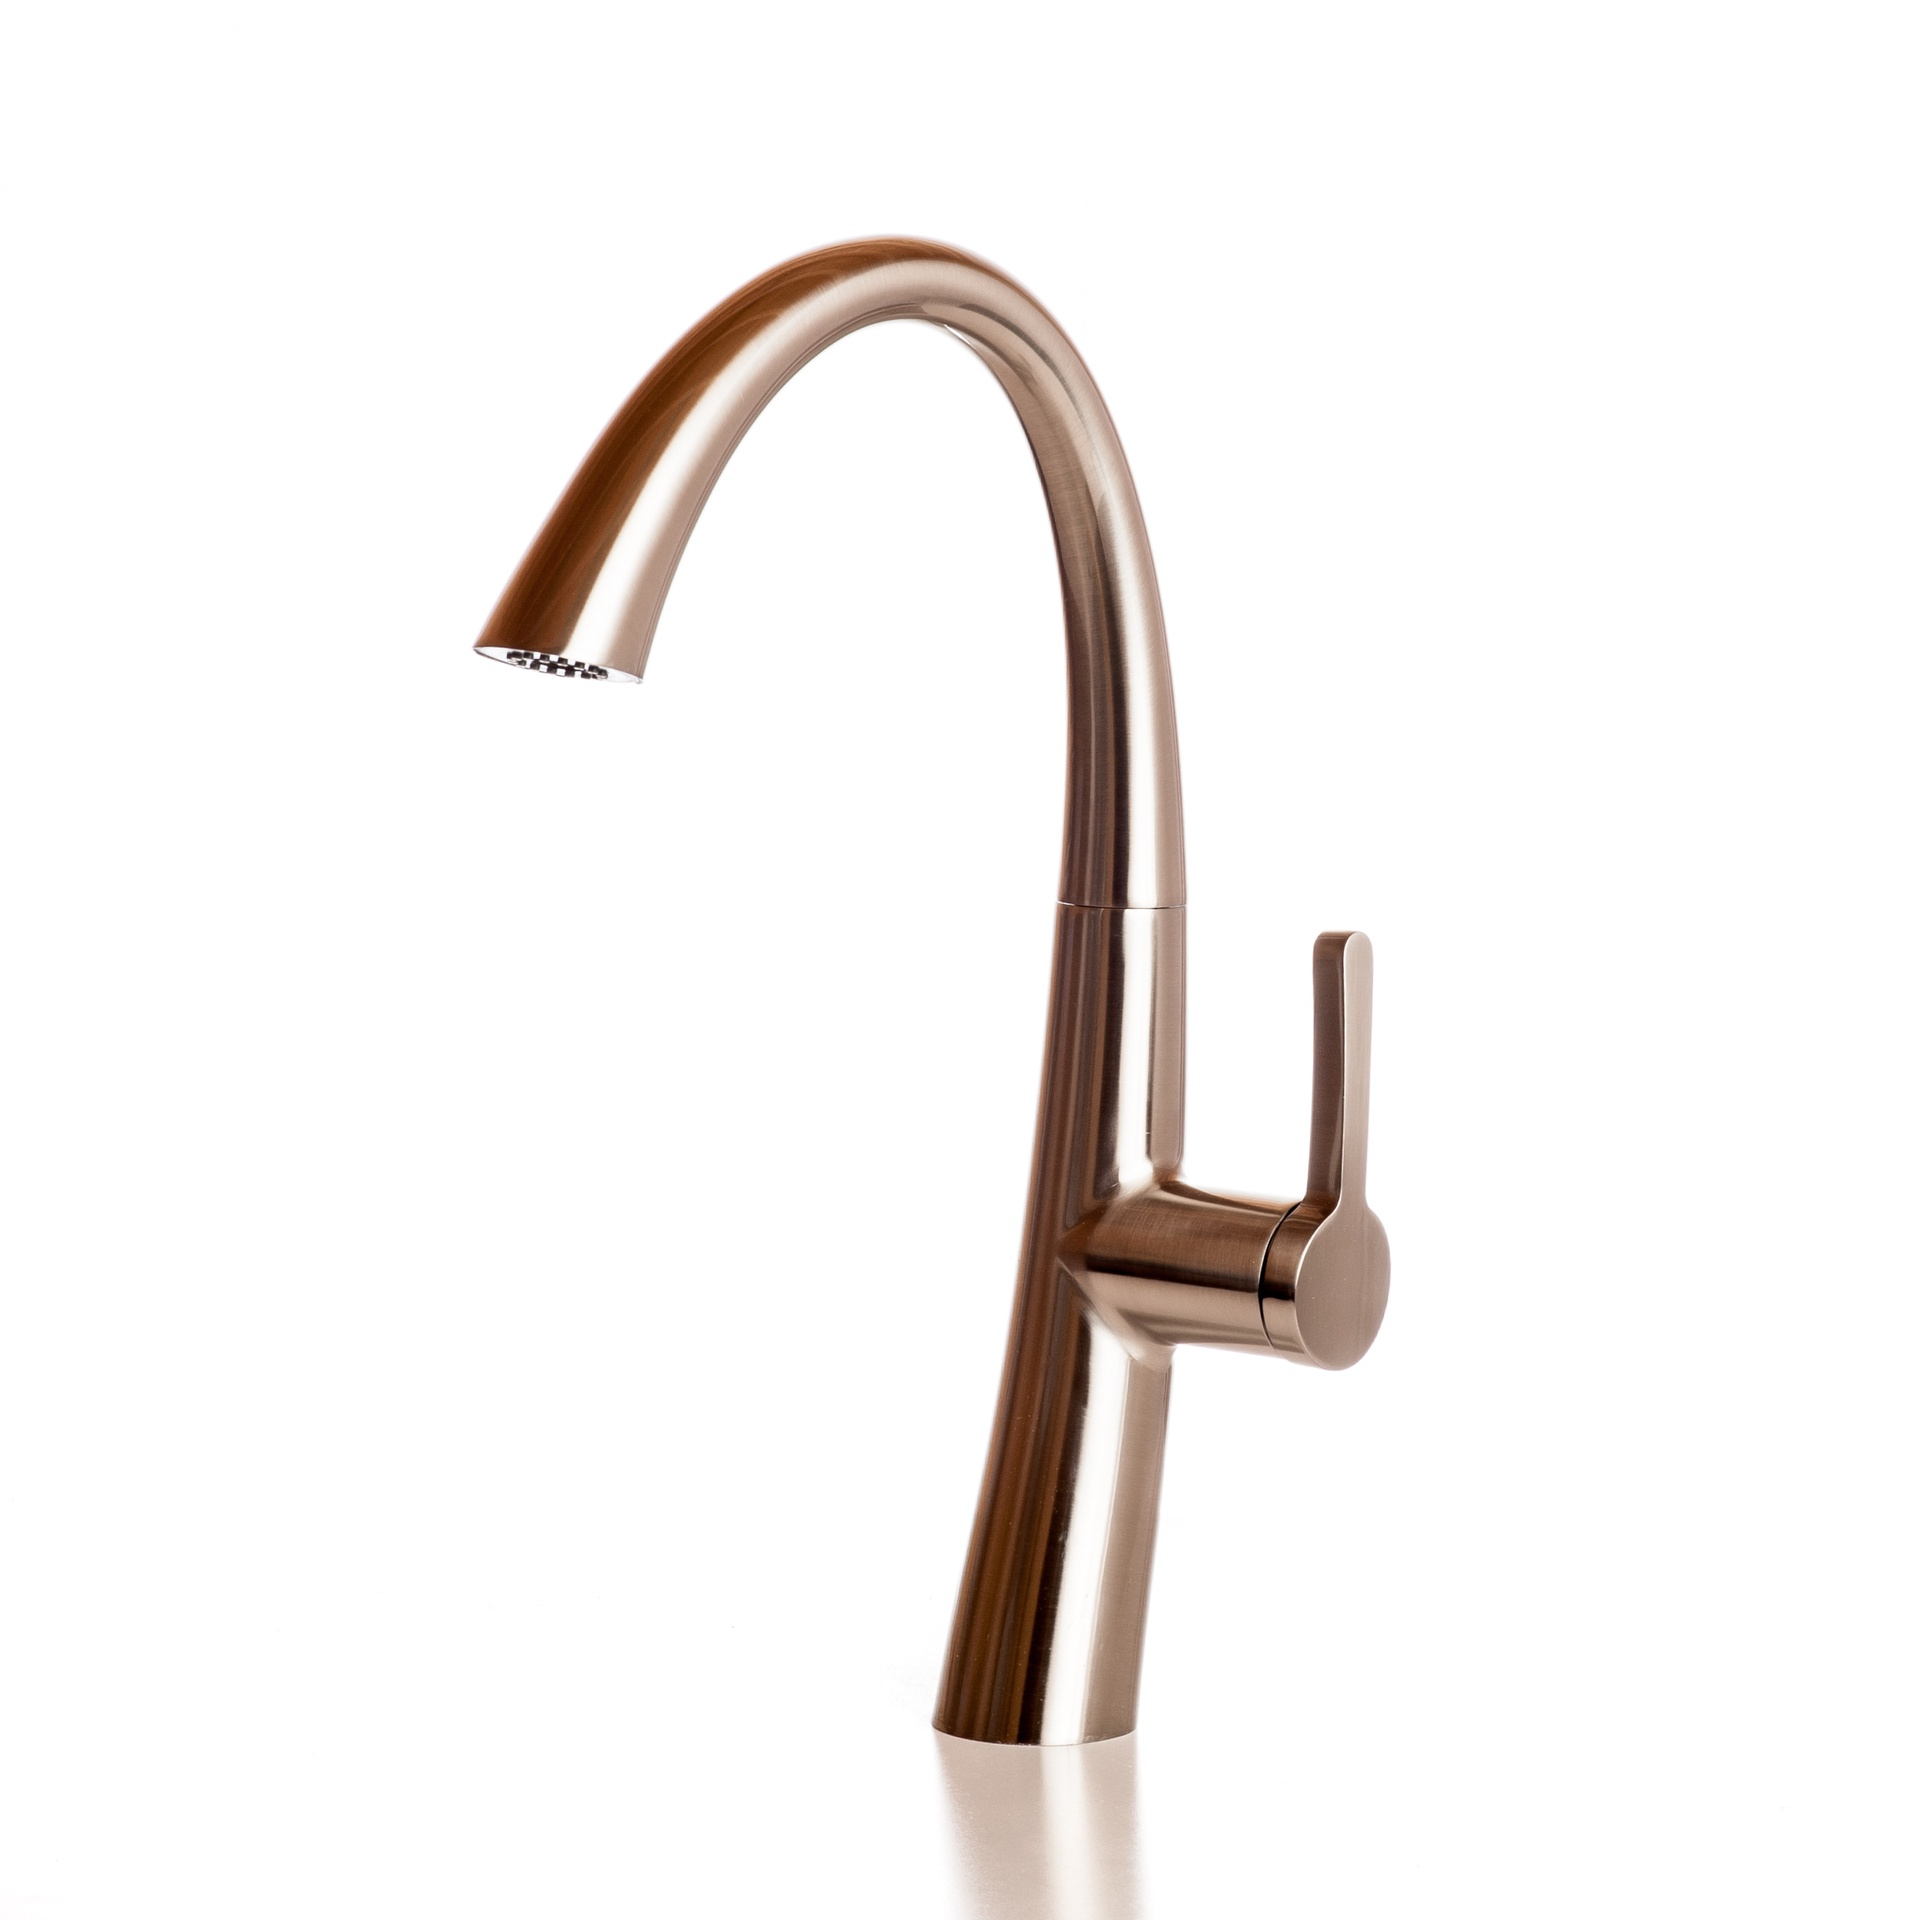 Faucet Kitchen Angled With Pull Down Spray - Brushed Nickel